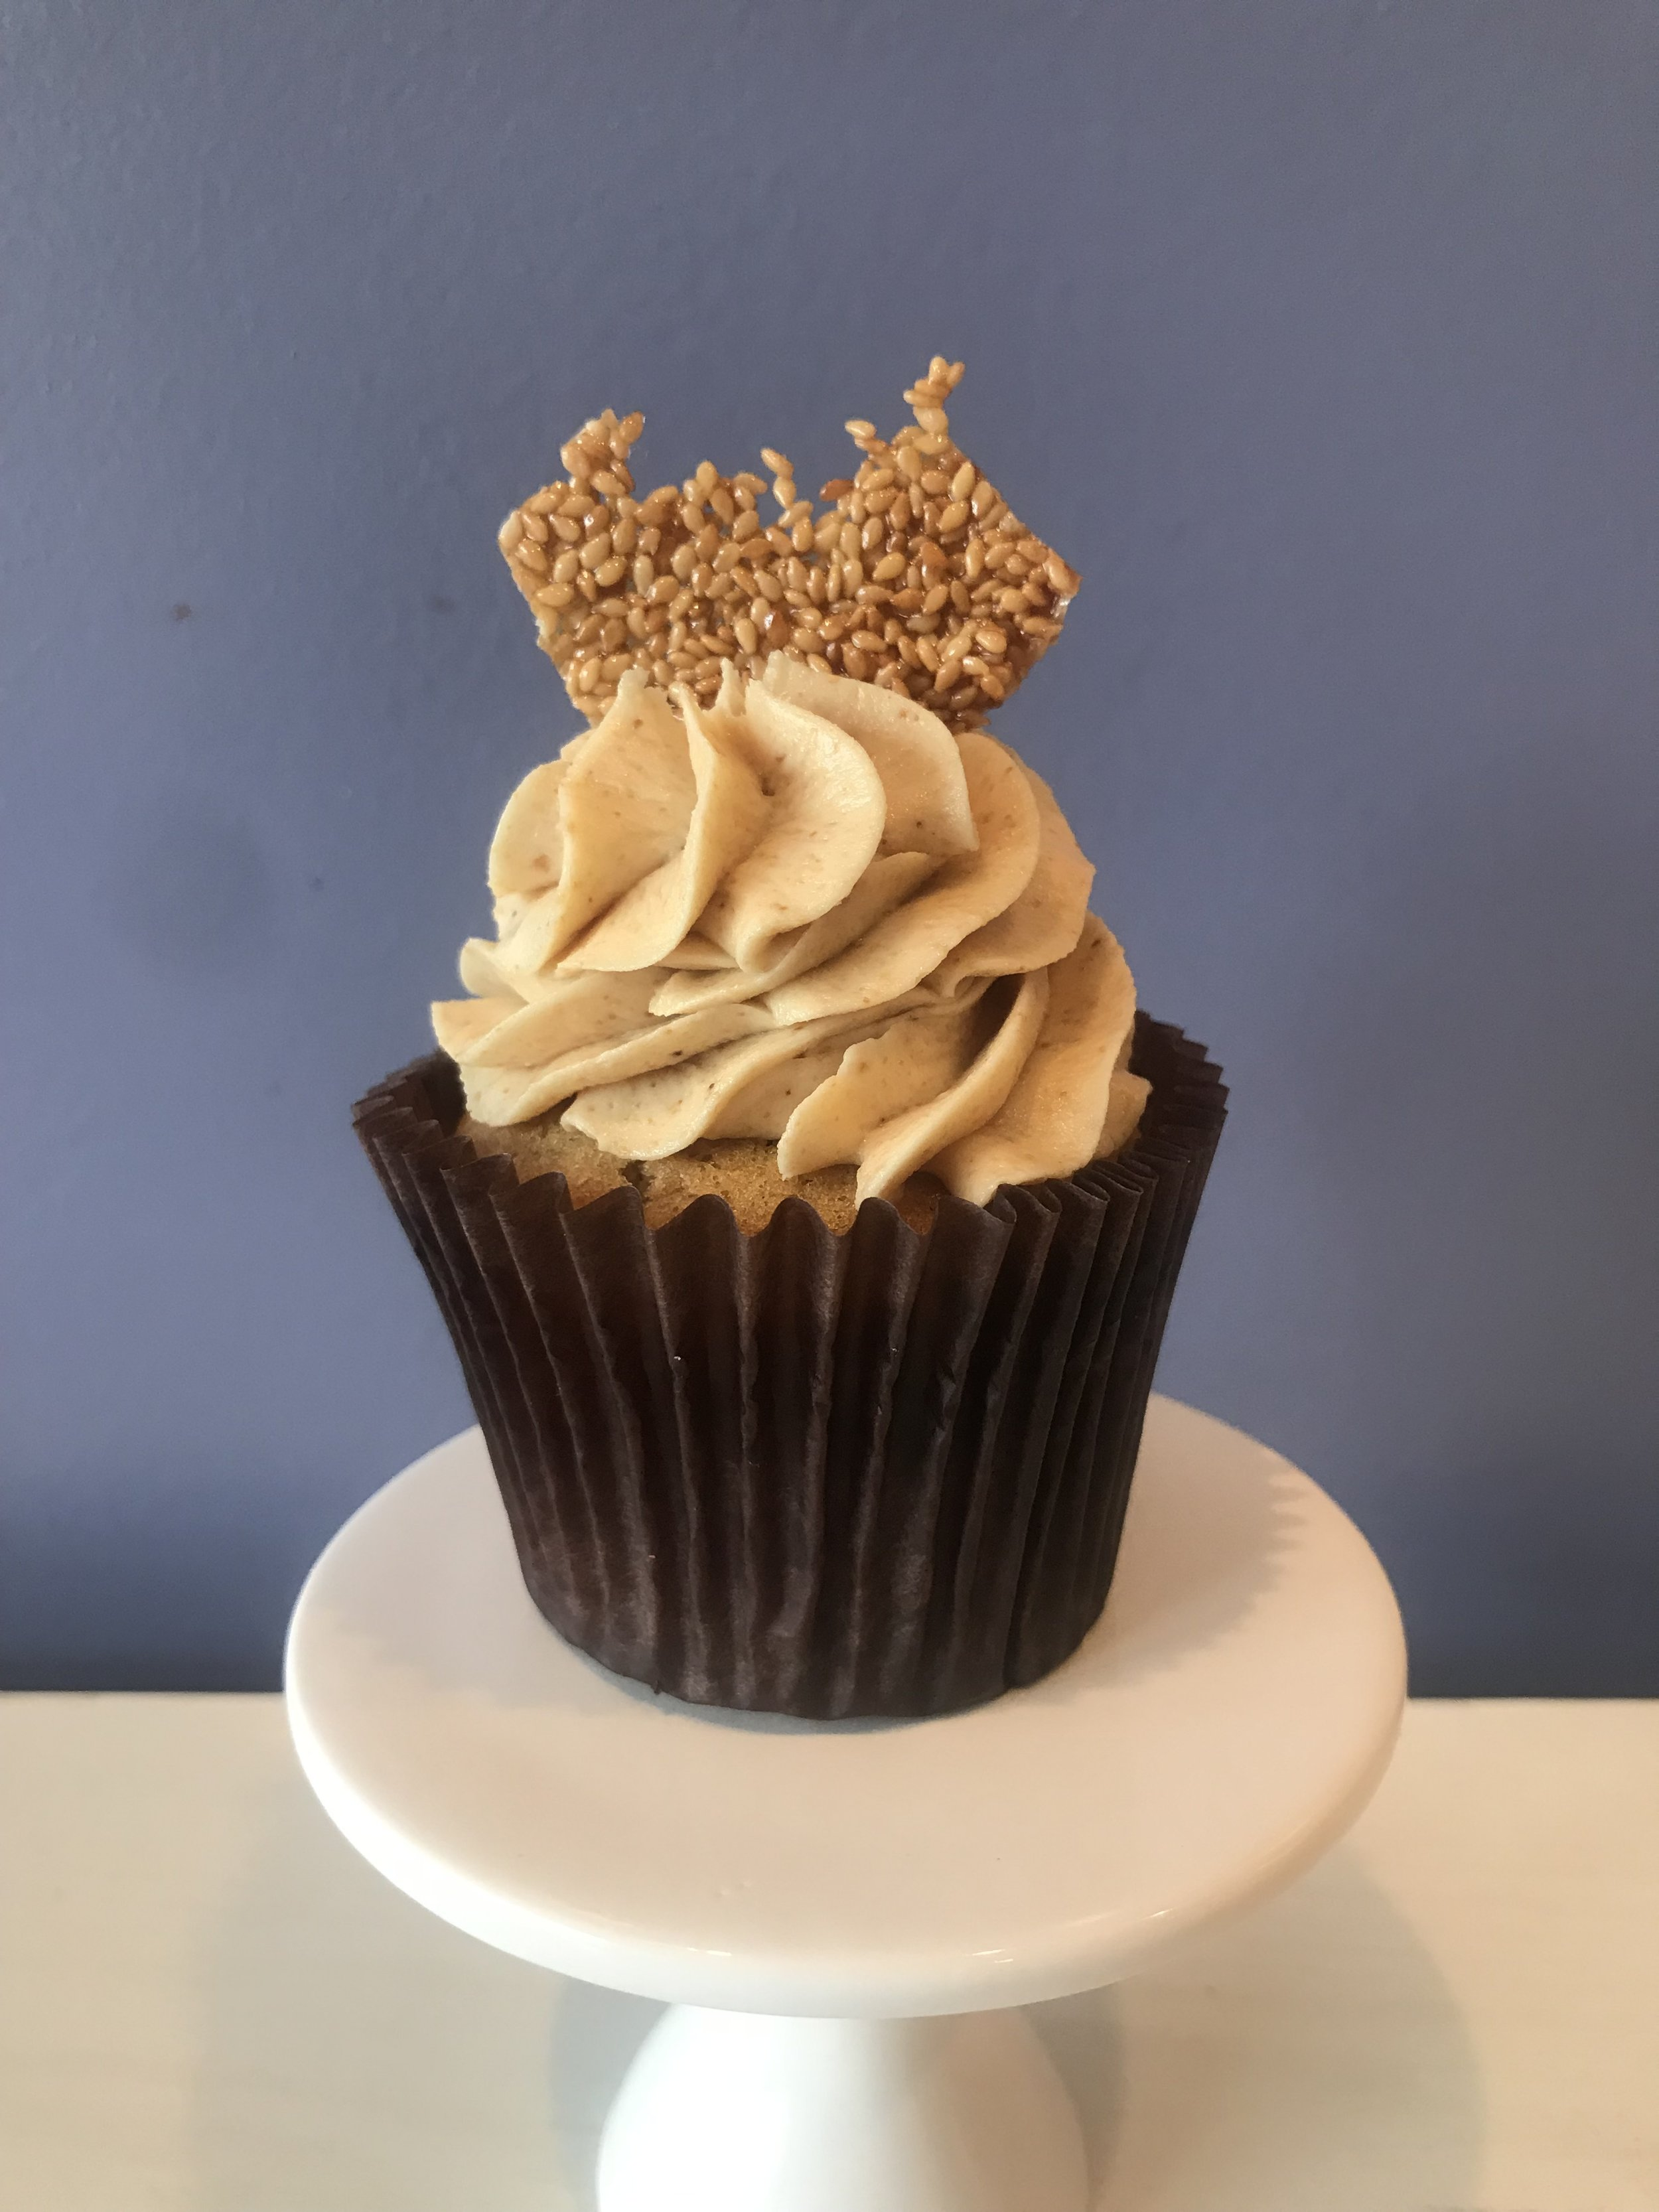 Sesame - Brown sugar cake topped with homemade tahini buttercream and a shard of crunchy sesame brittle. Our Sugar Showdown winning cupcake!